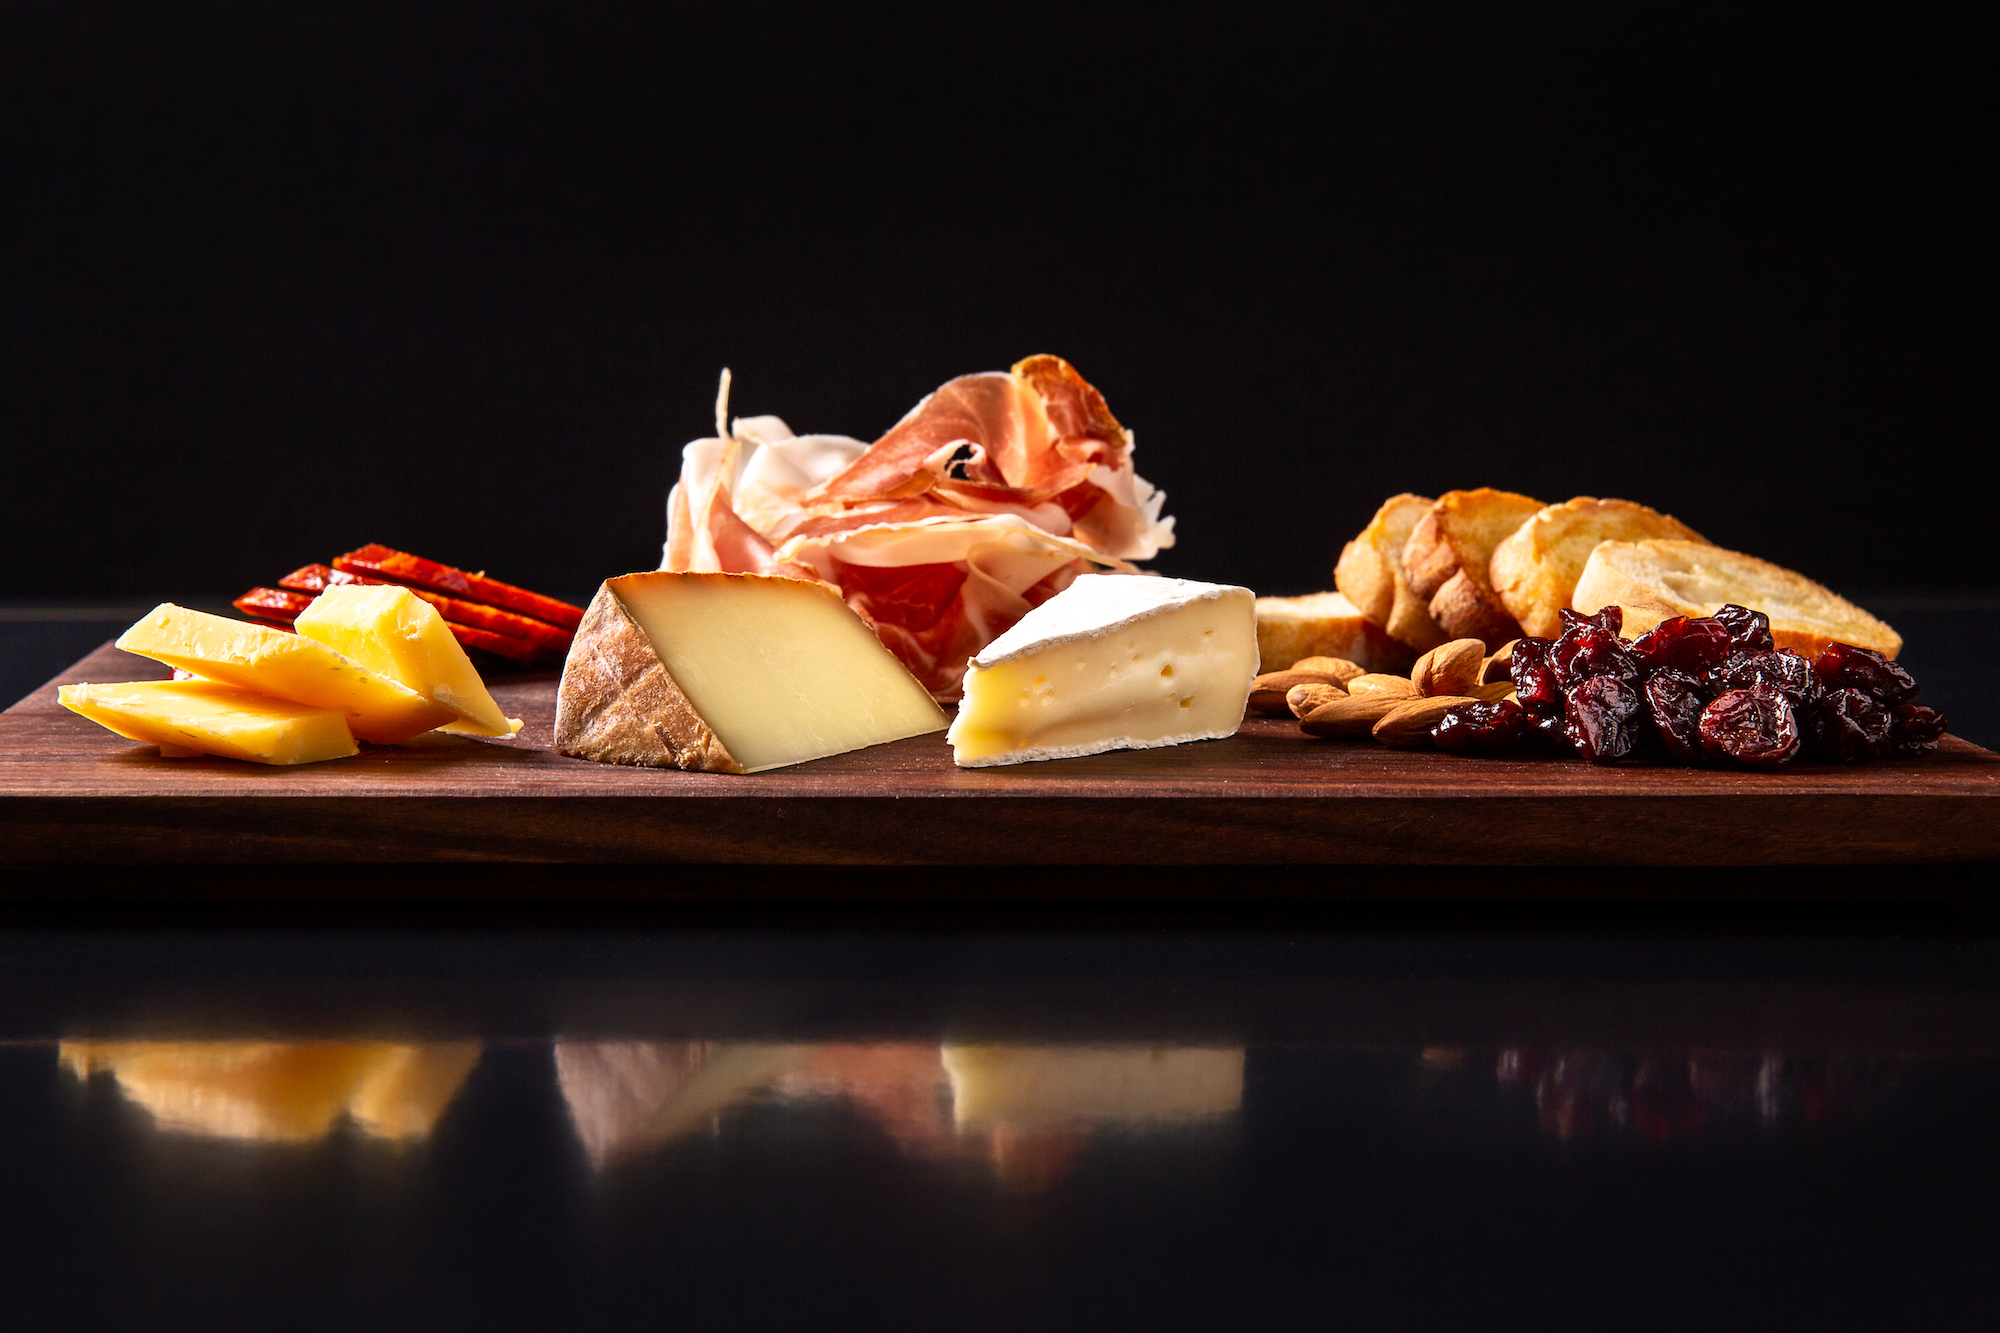 meat and cheese on a cutting board